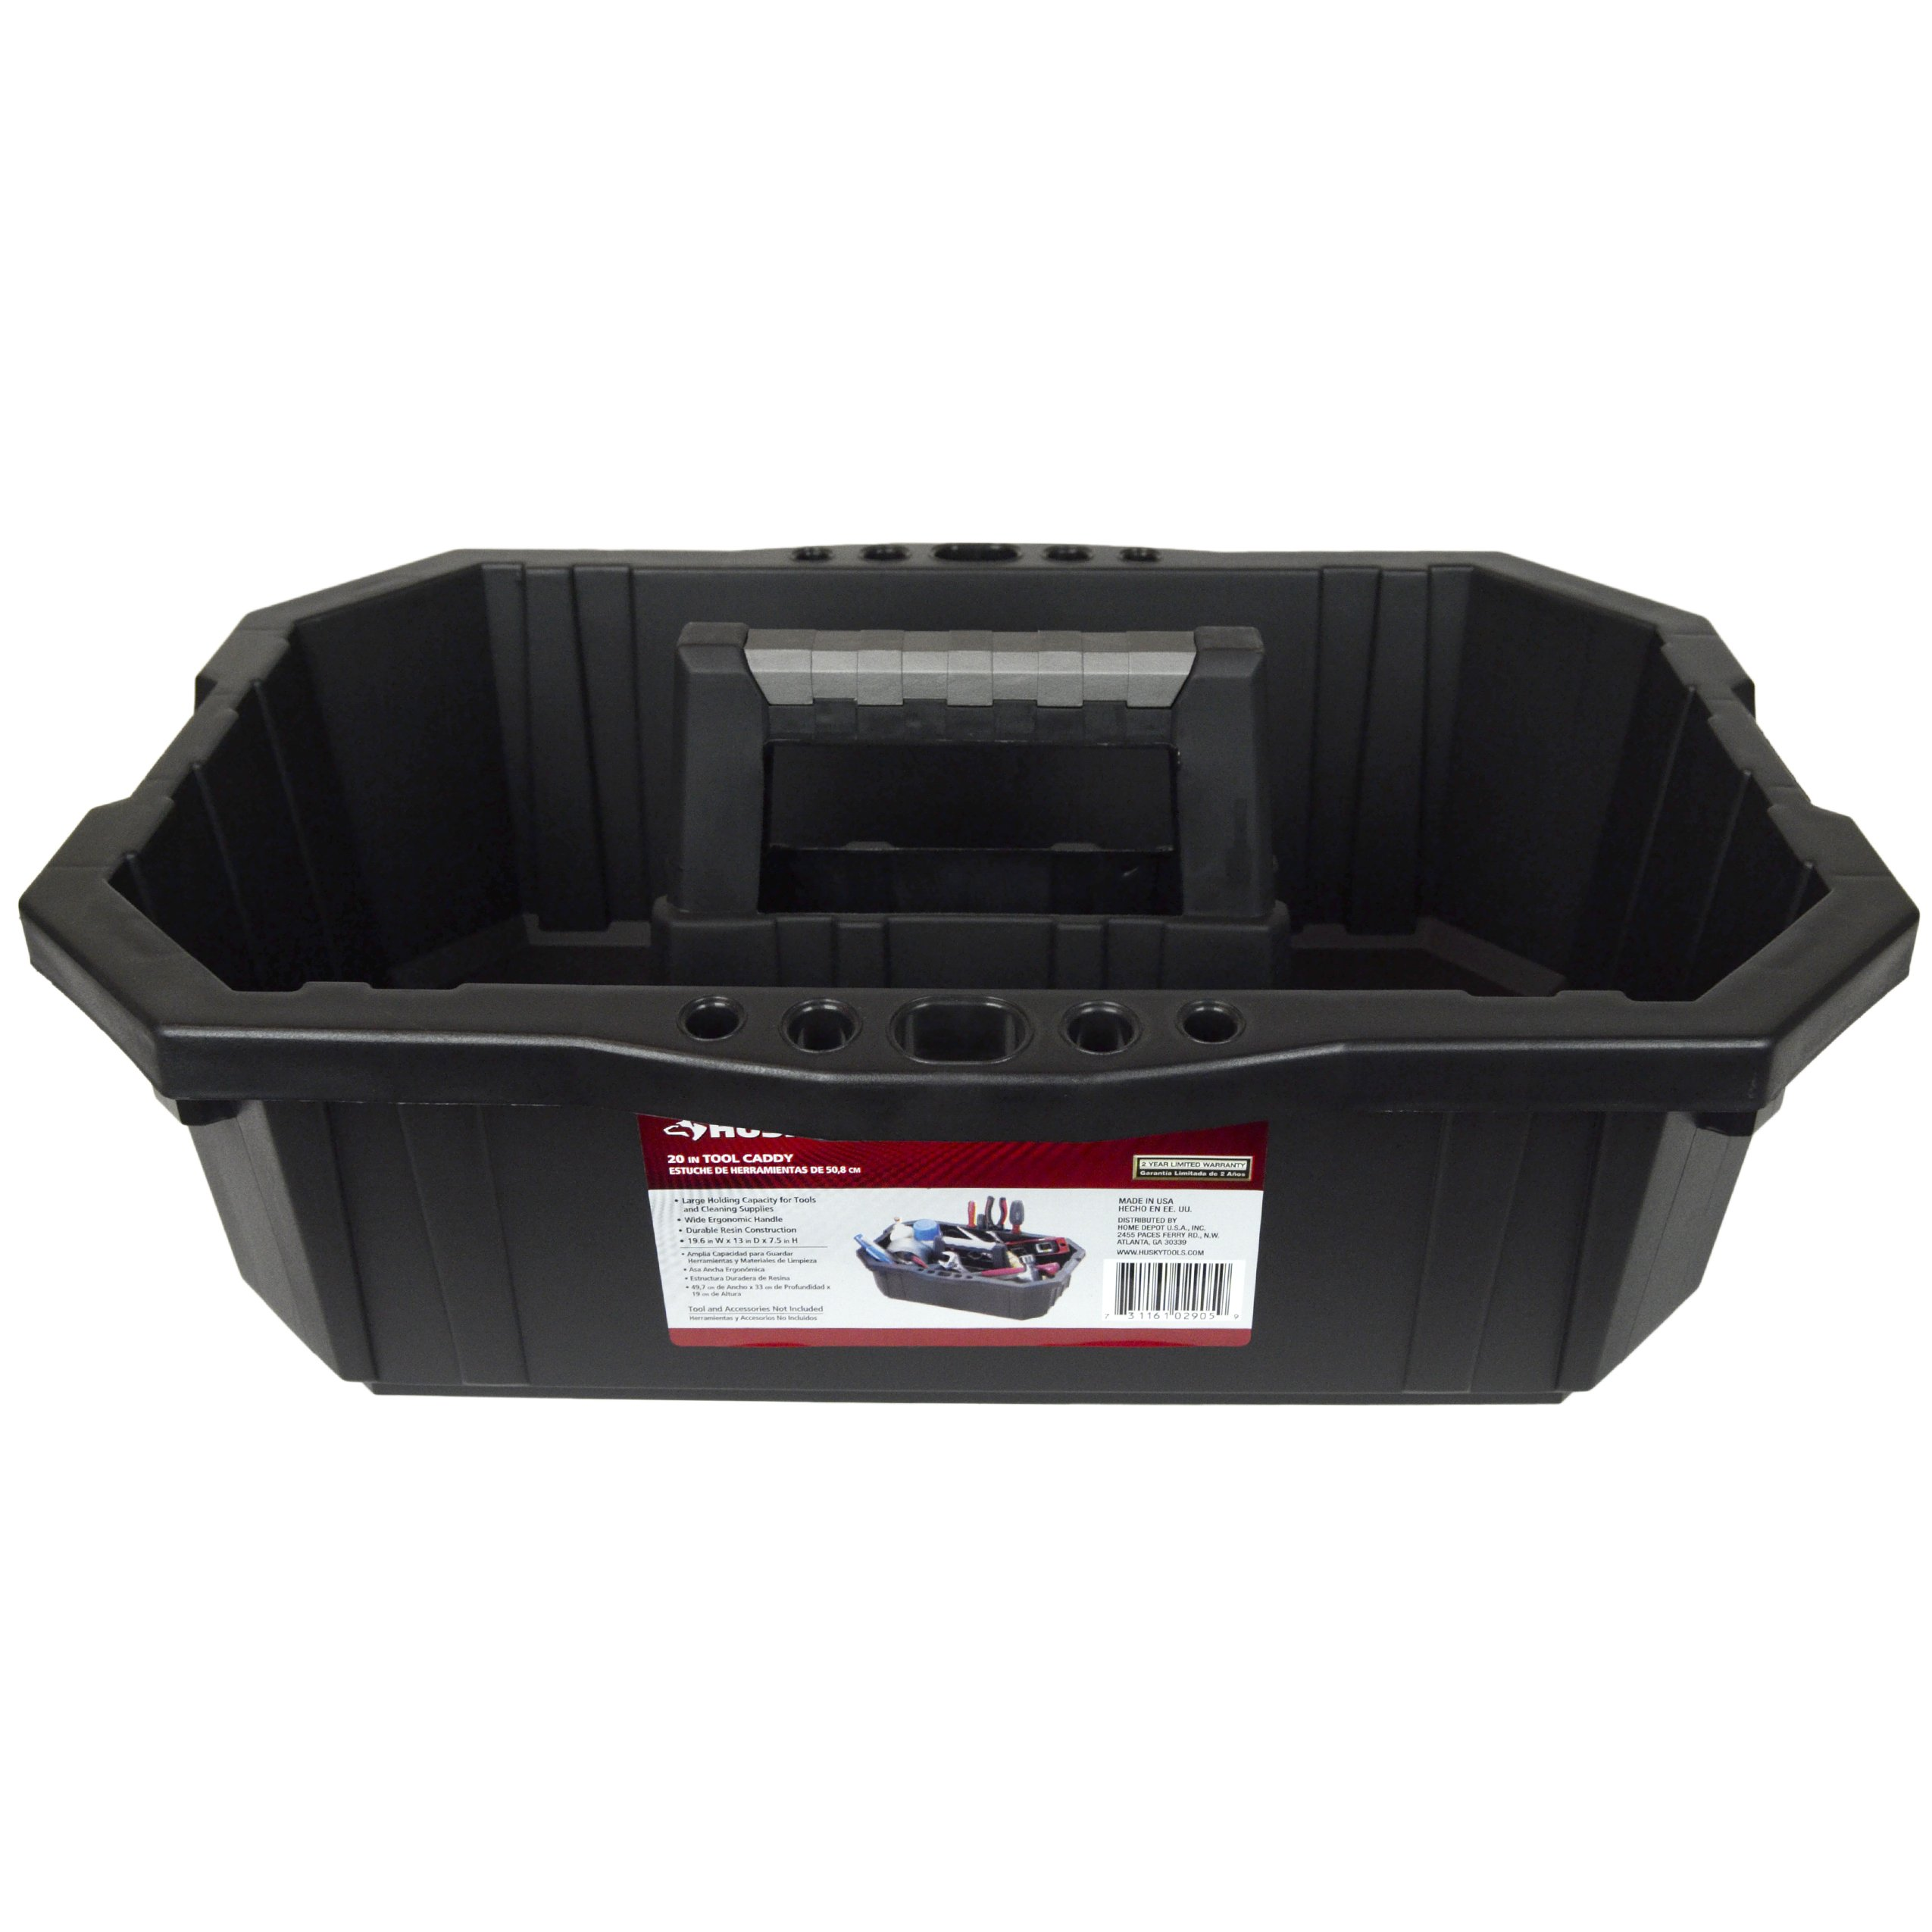 HUSKY Single Compartment Professional Tool Caddy Made in the USA 19.6 inch-13 inch-7.5 inch